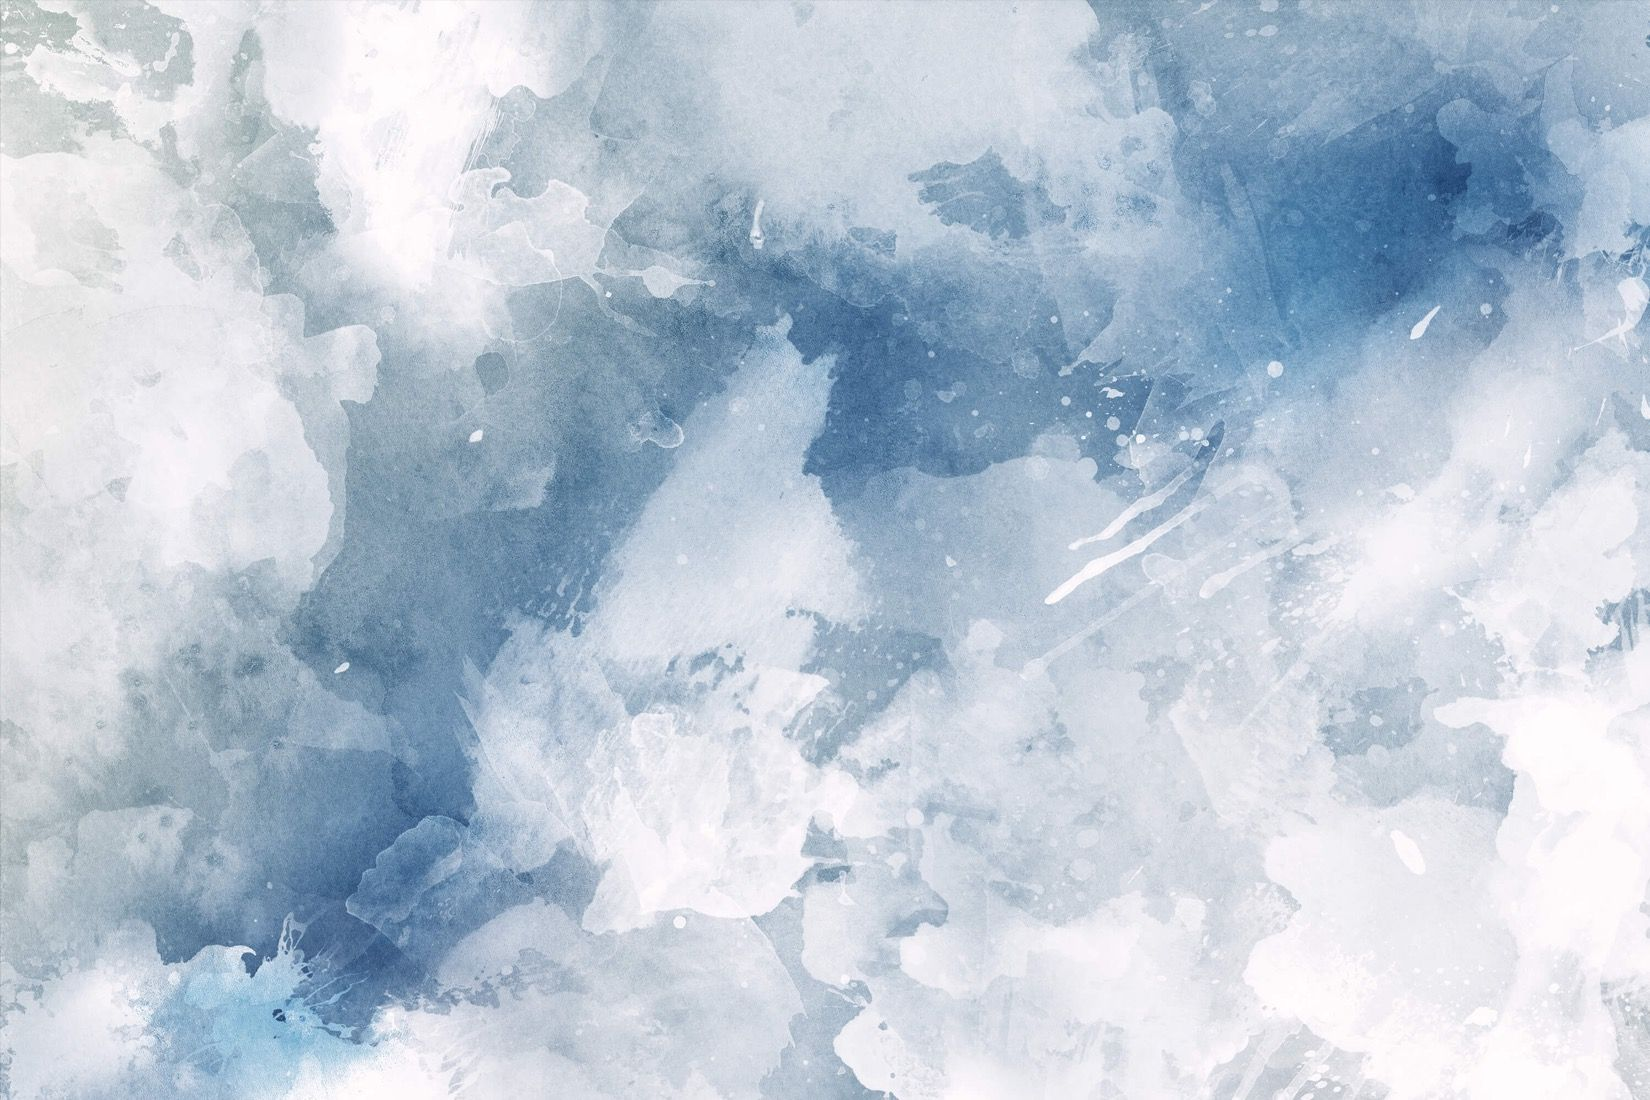 Different Shades Of Blue Paint blue and white grunge paint watercolour wallpaper | watercolor